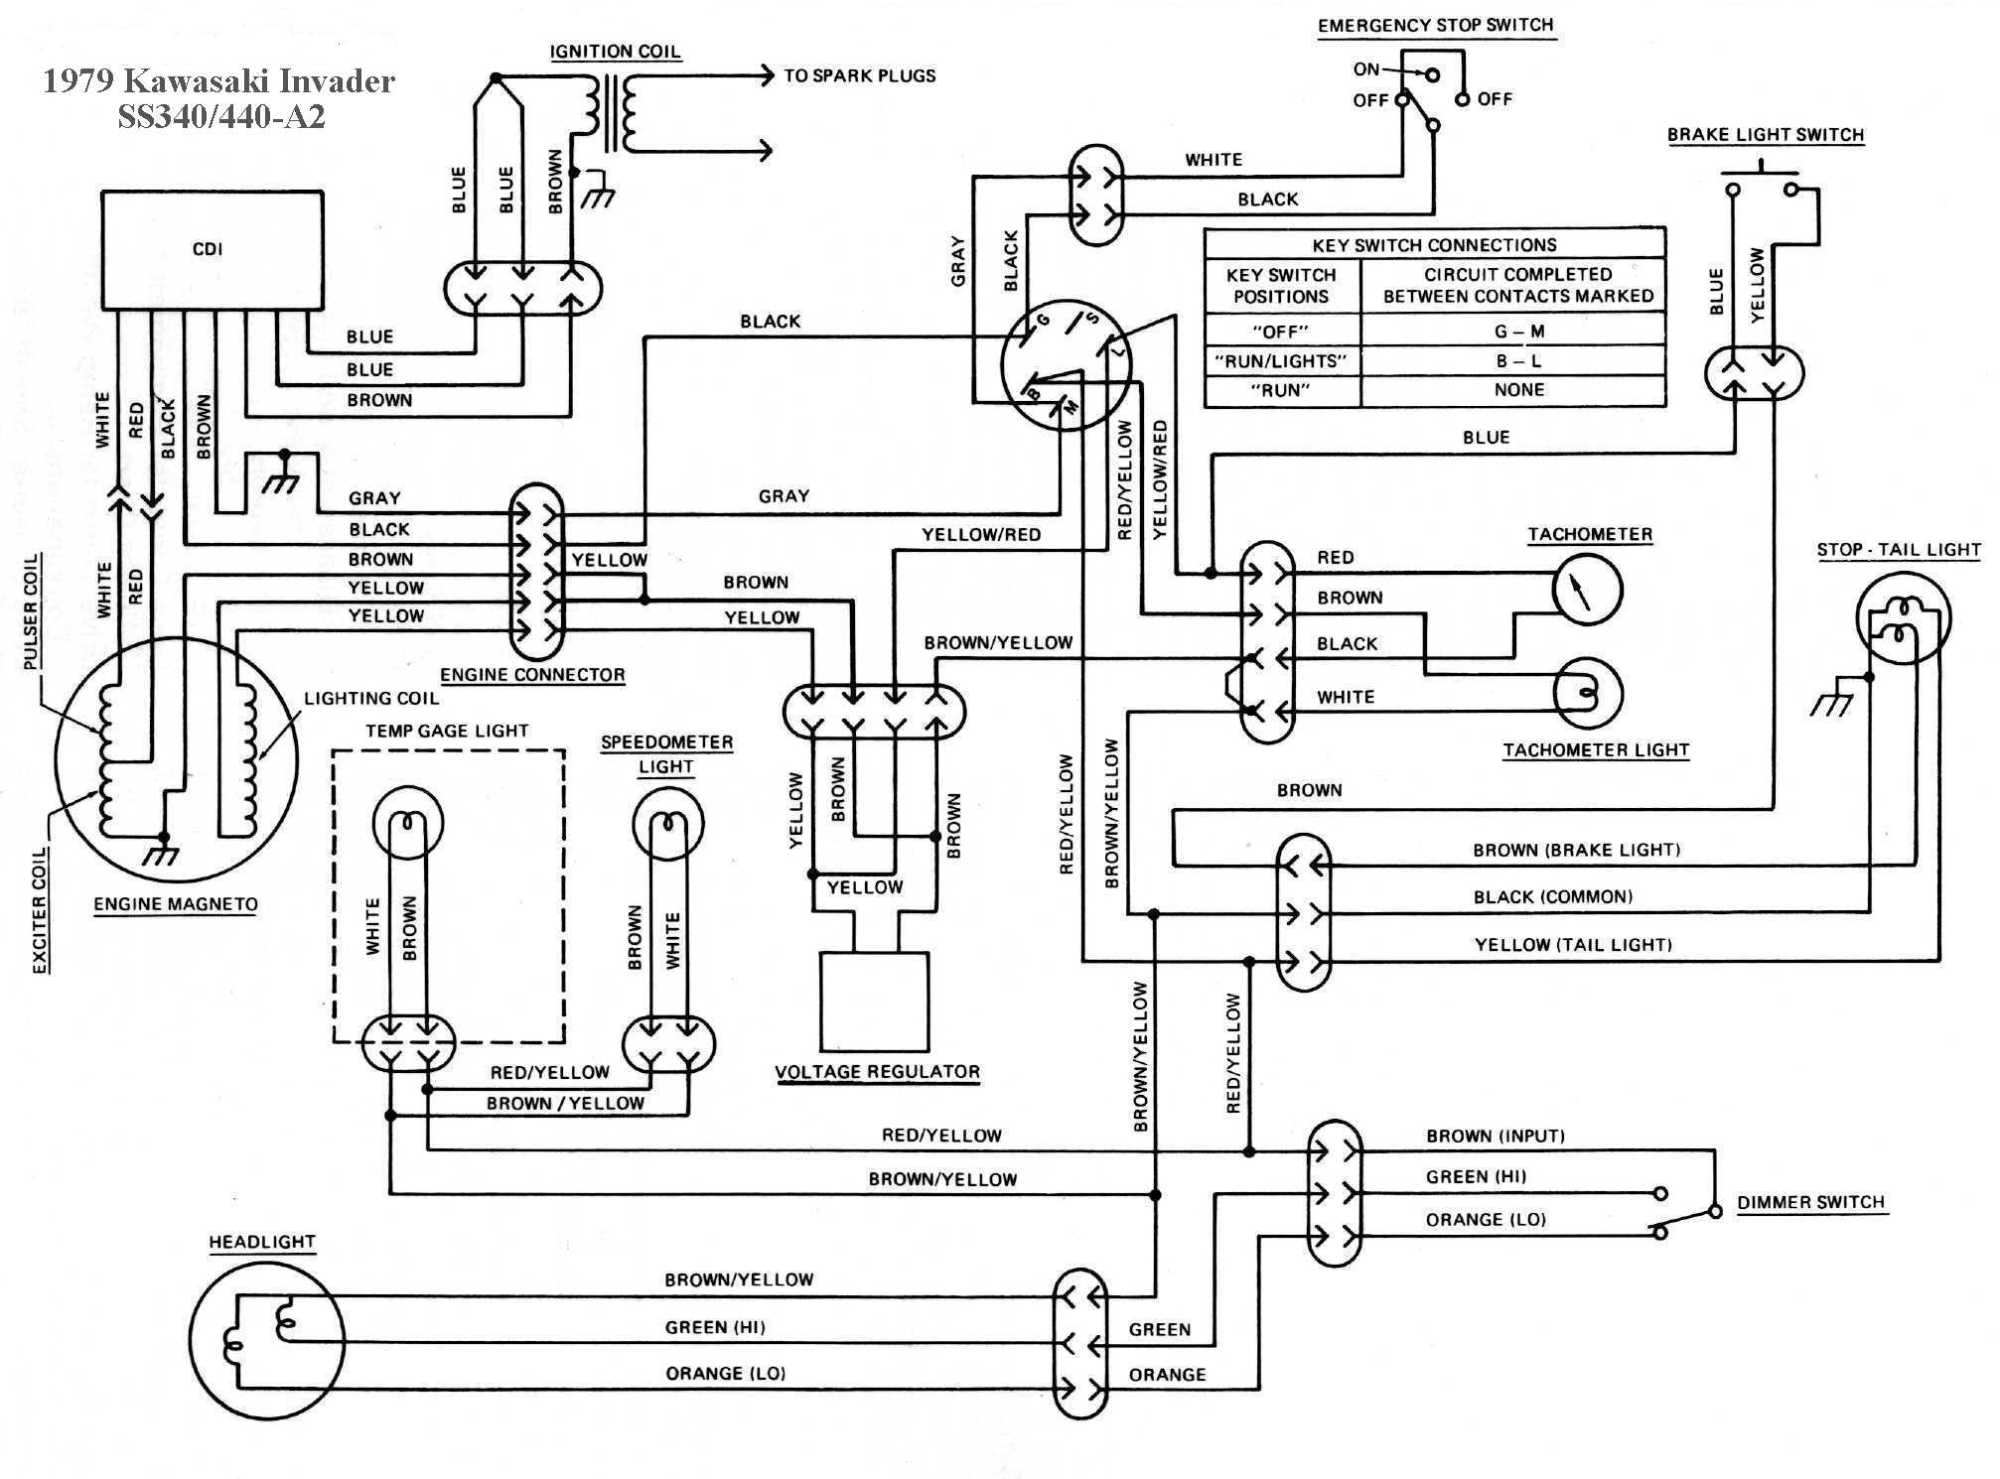 hight resolution of bayou 250 wiring diagram wiring diagram blog 2005 kawasaki bayou 250 wiring diagram wiring diagram week